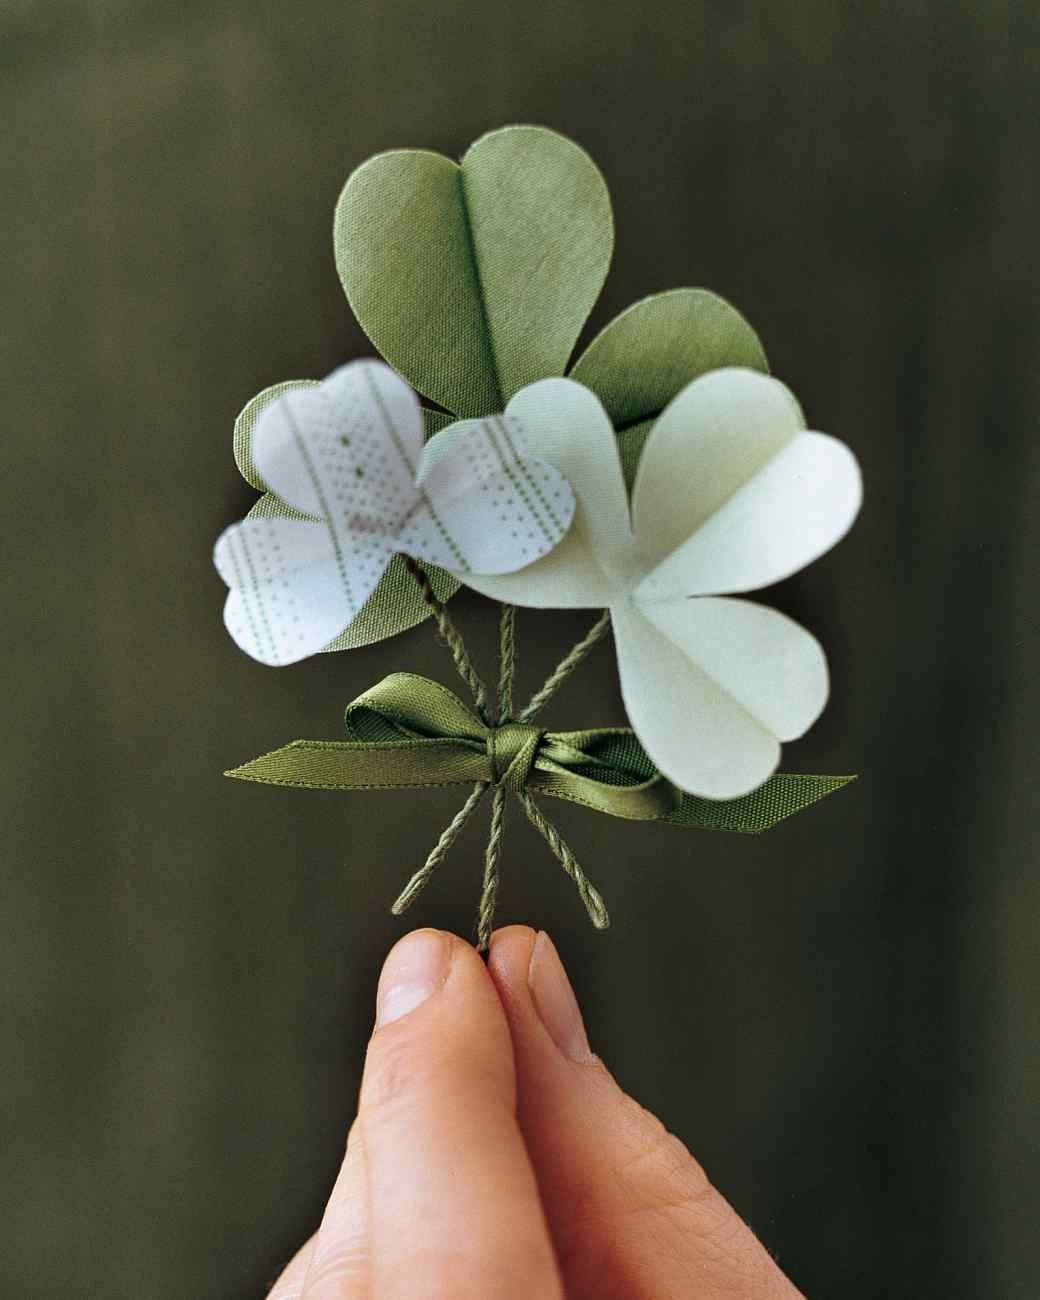 Uncategorized Legend Of The Shamrock shamrock boutonnieres martha stewart and craft saint patrick would have approved of these little green accessories according to popular legend